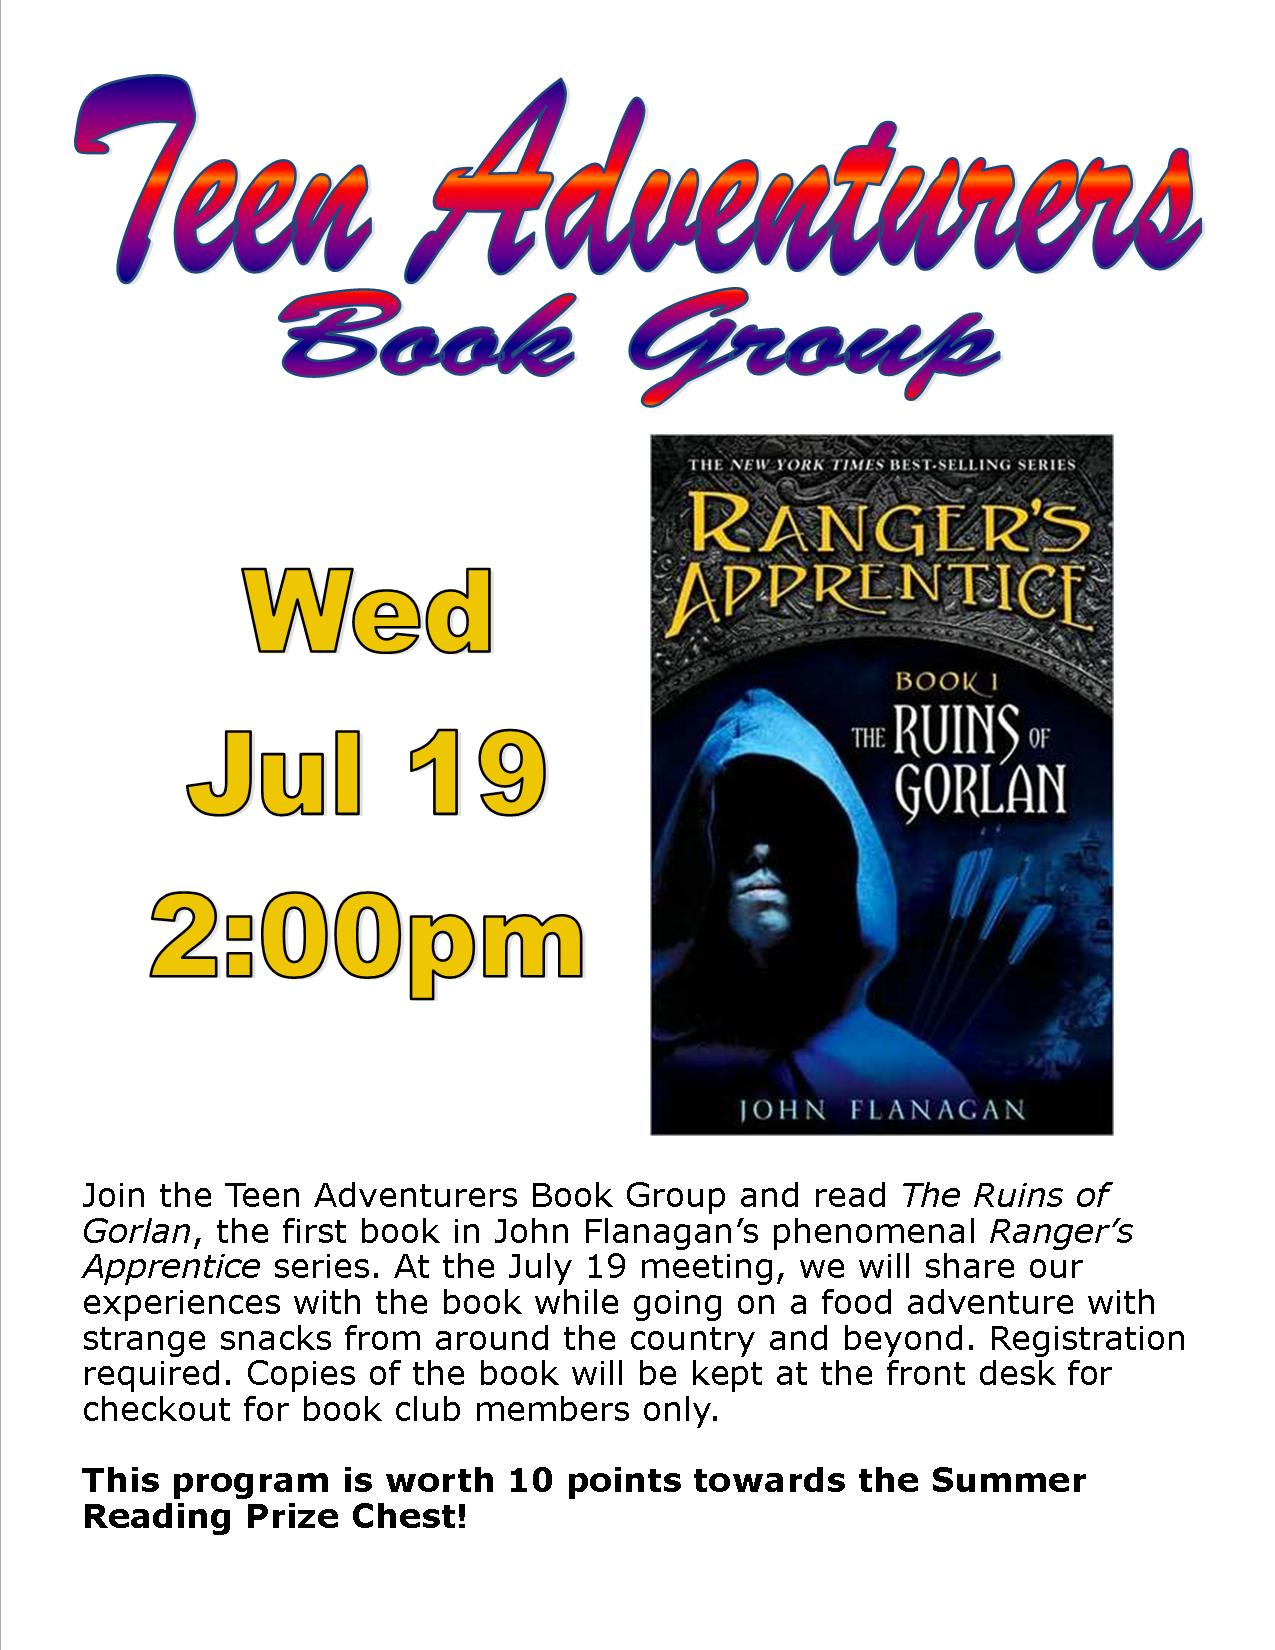 Teen Adventurers Book Club - Wed Jul 19 at 2pm